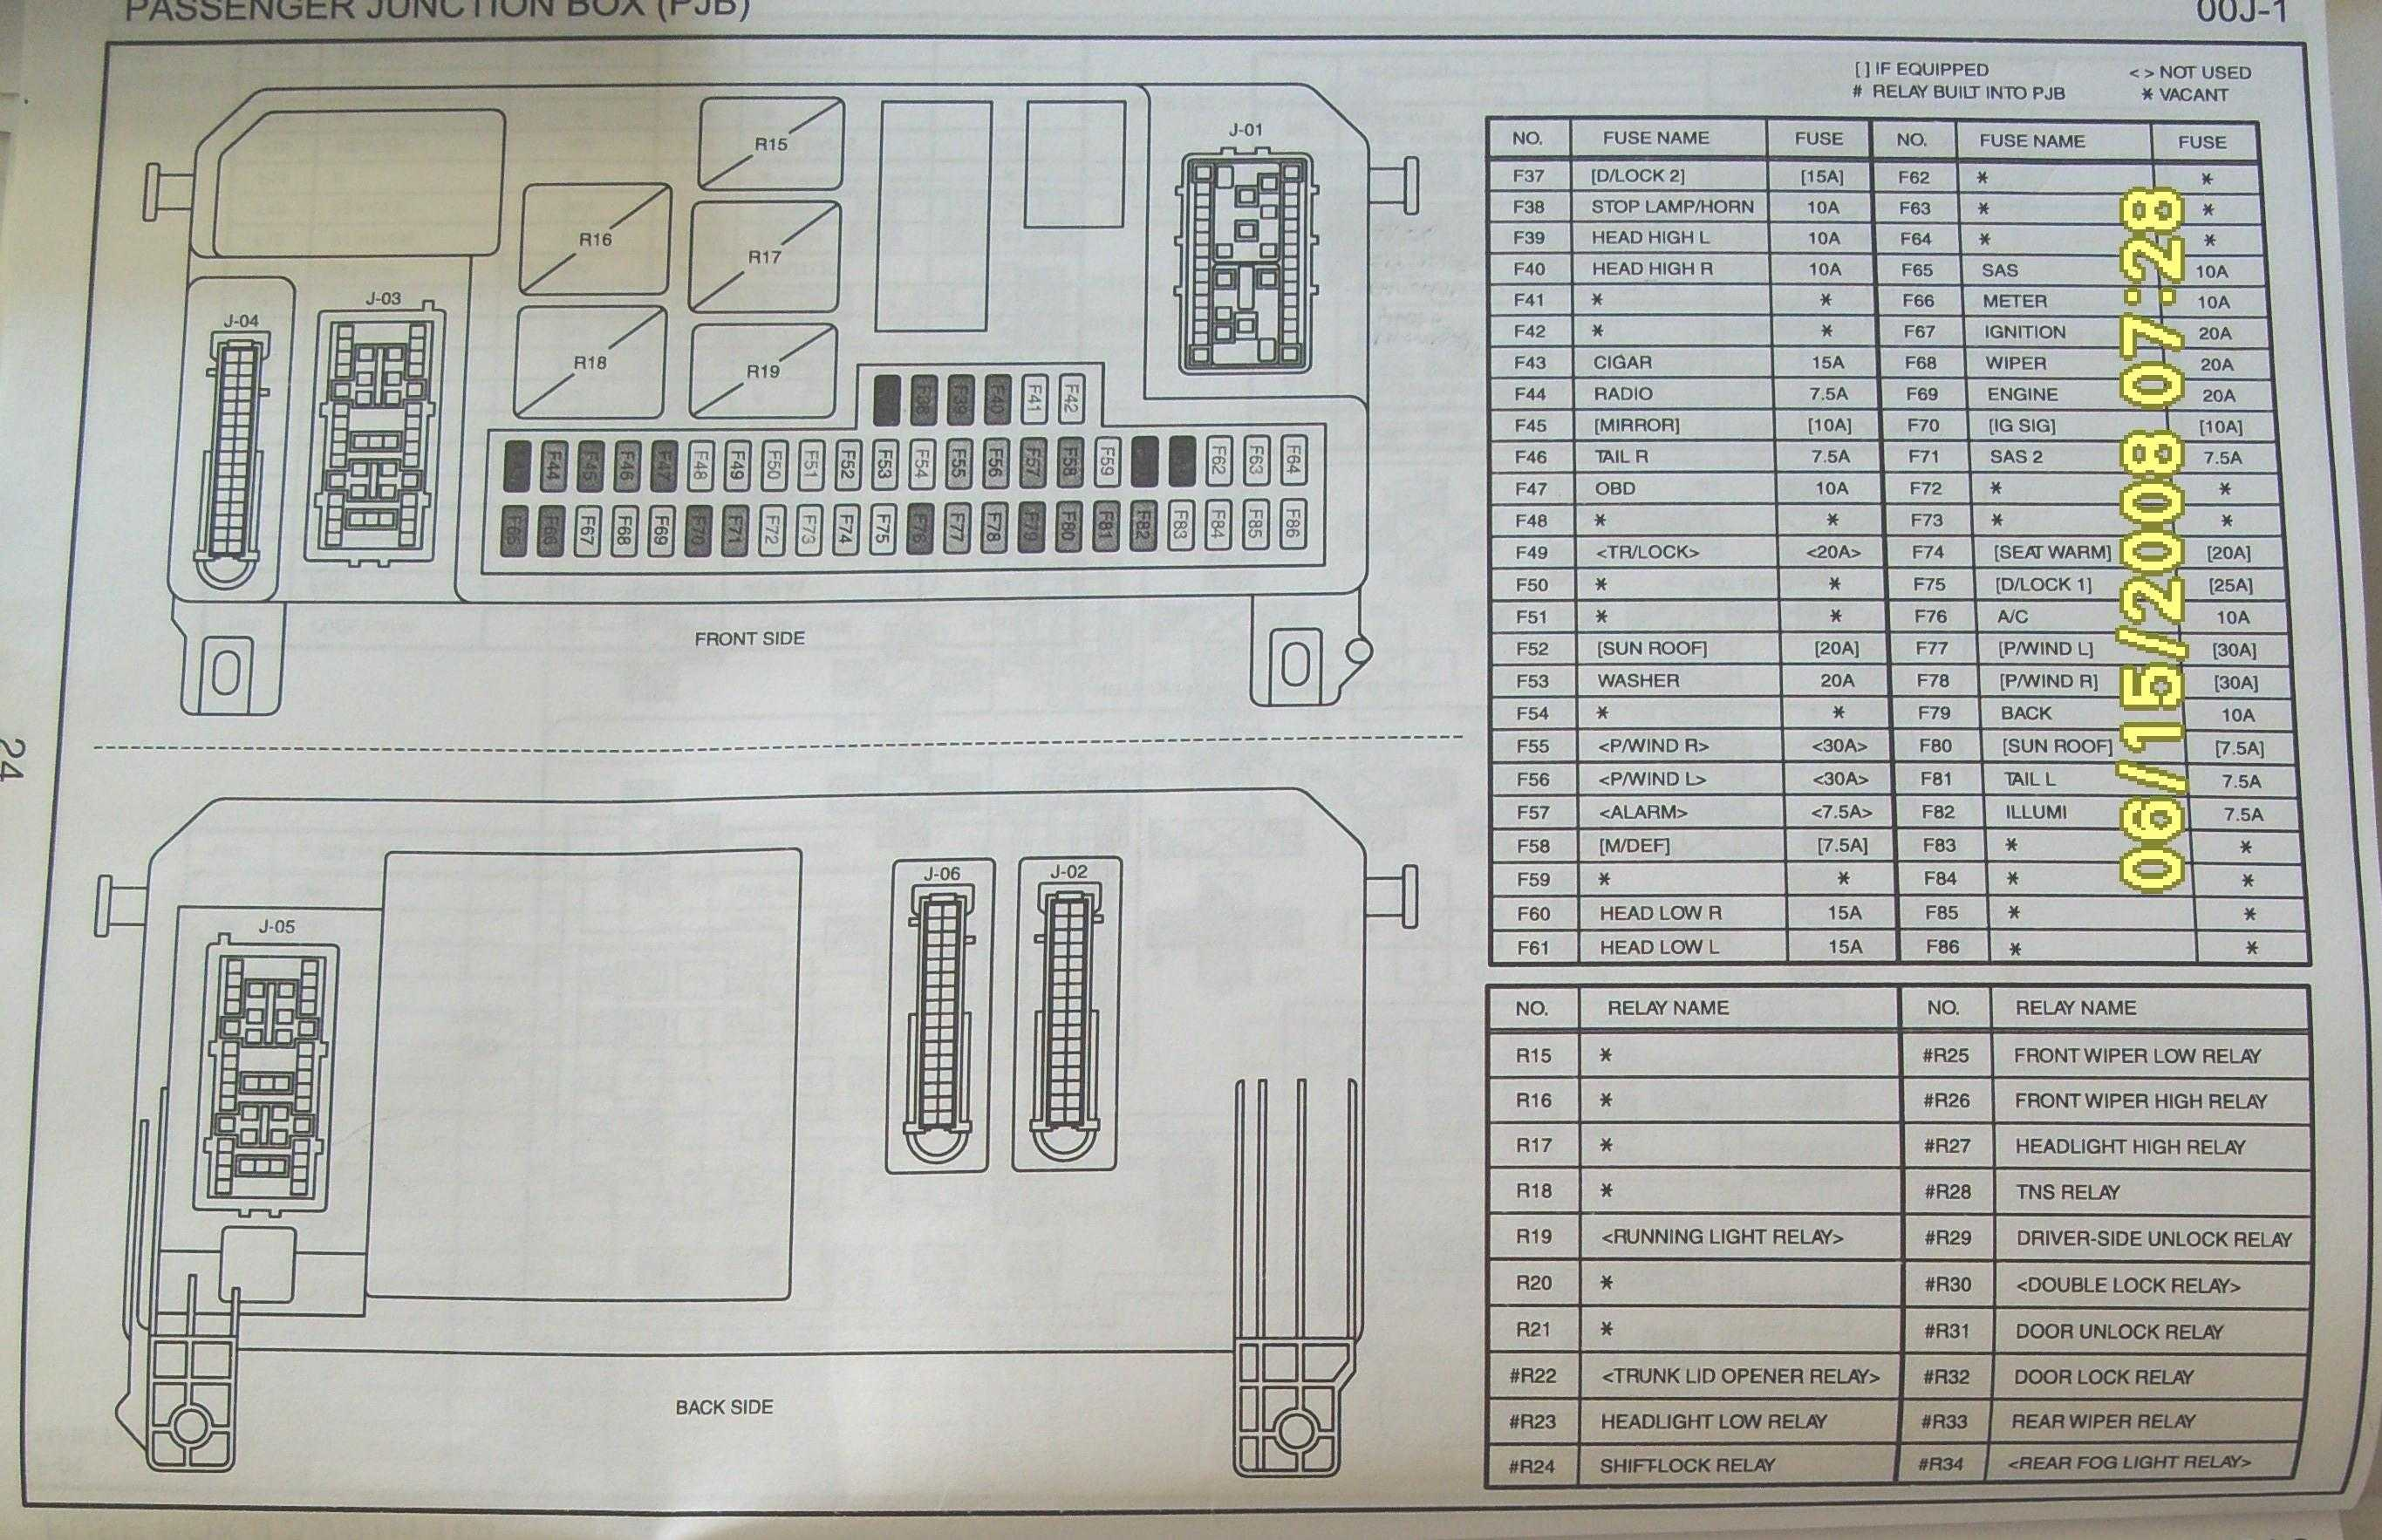 2008 Mazda 6 Headlight Wiring Schematic 39 Diagram Images 2004 3 Diagrams 8366d1276288059 Headlights Horn Wont Shutoff S1050443 Commented Pg1 50resize665